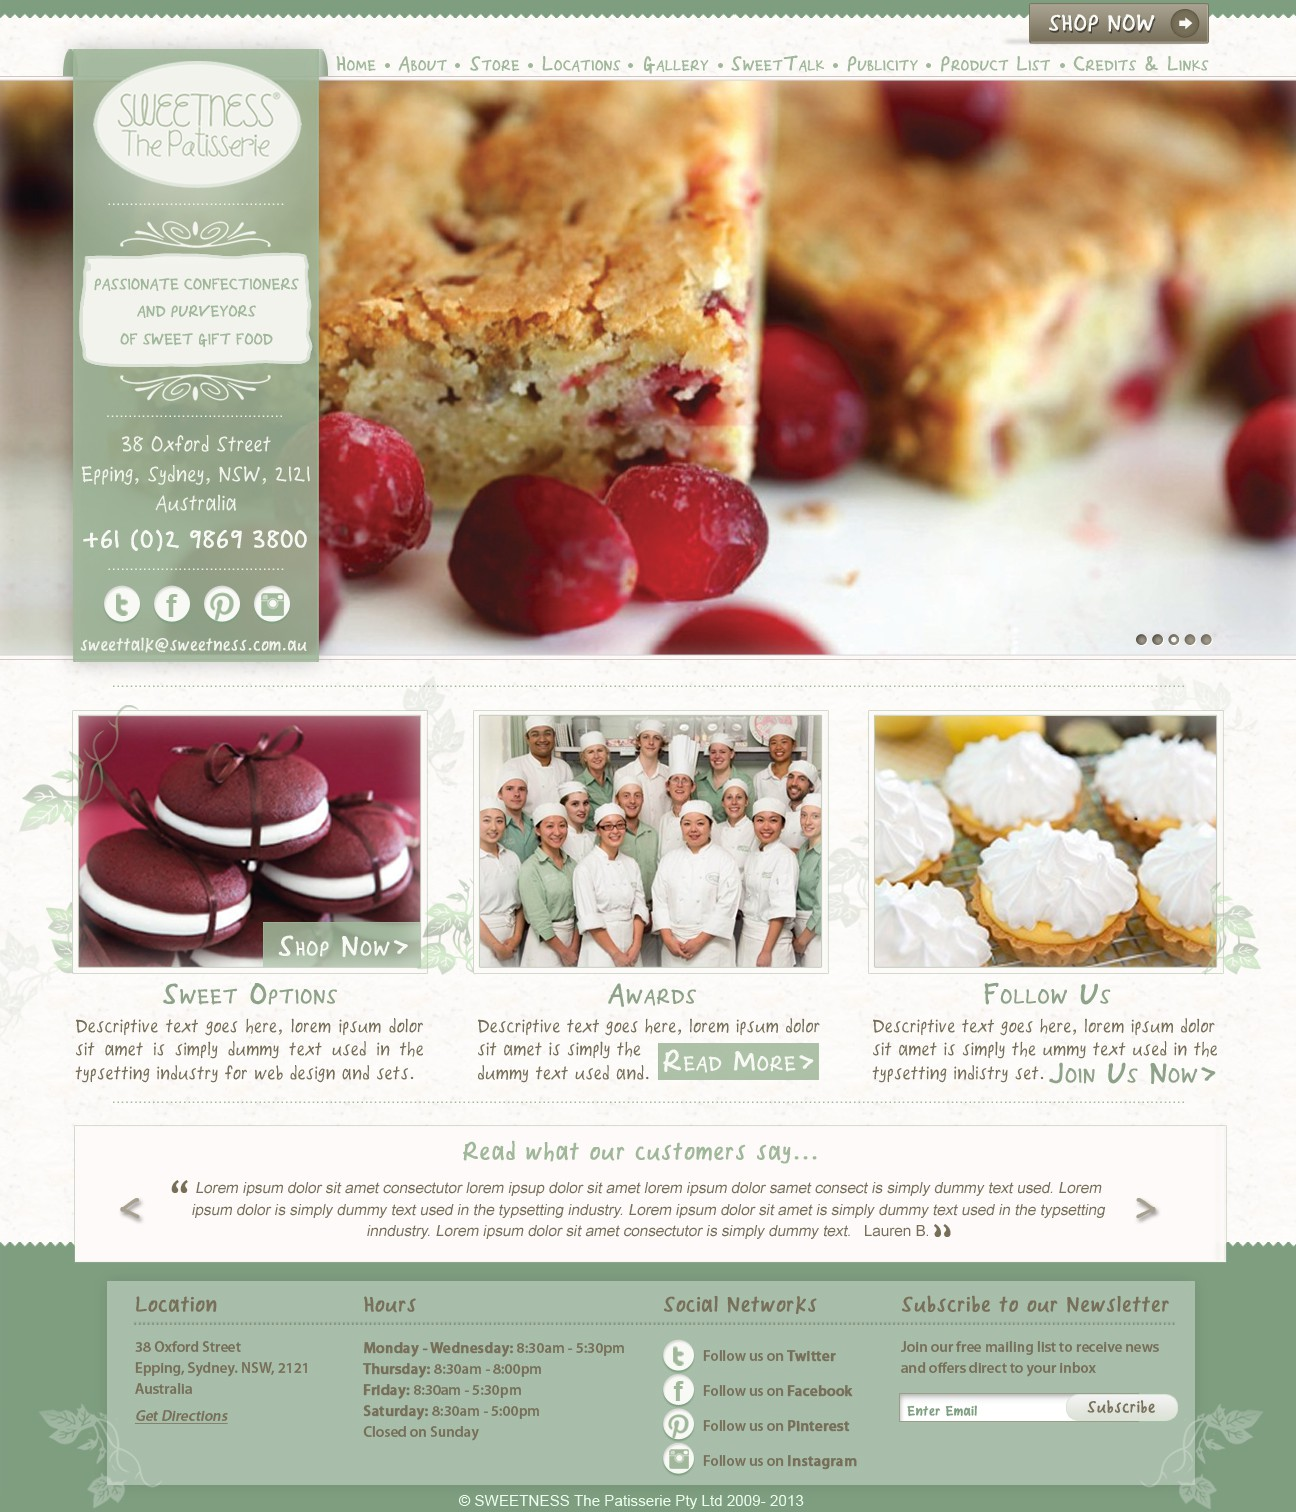 New website design wanted for SWEETNESS The Patisserie